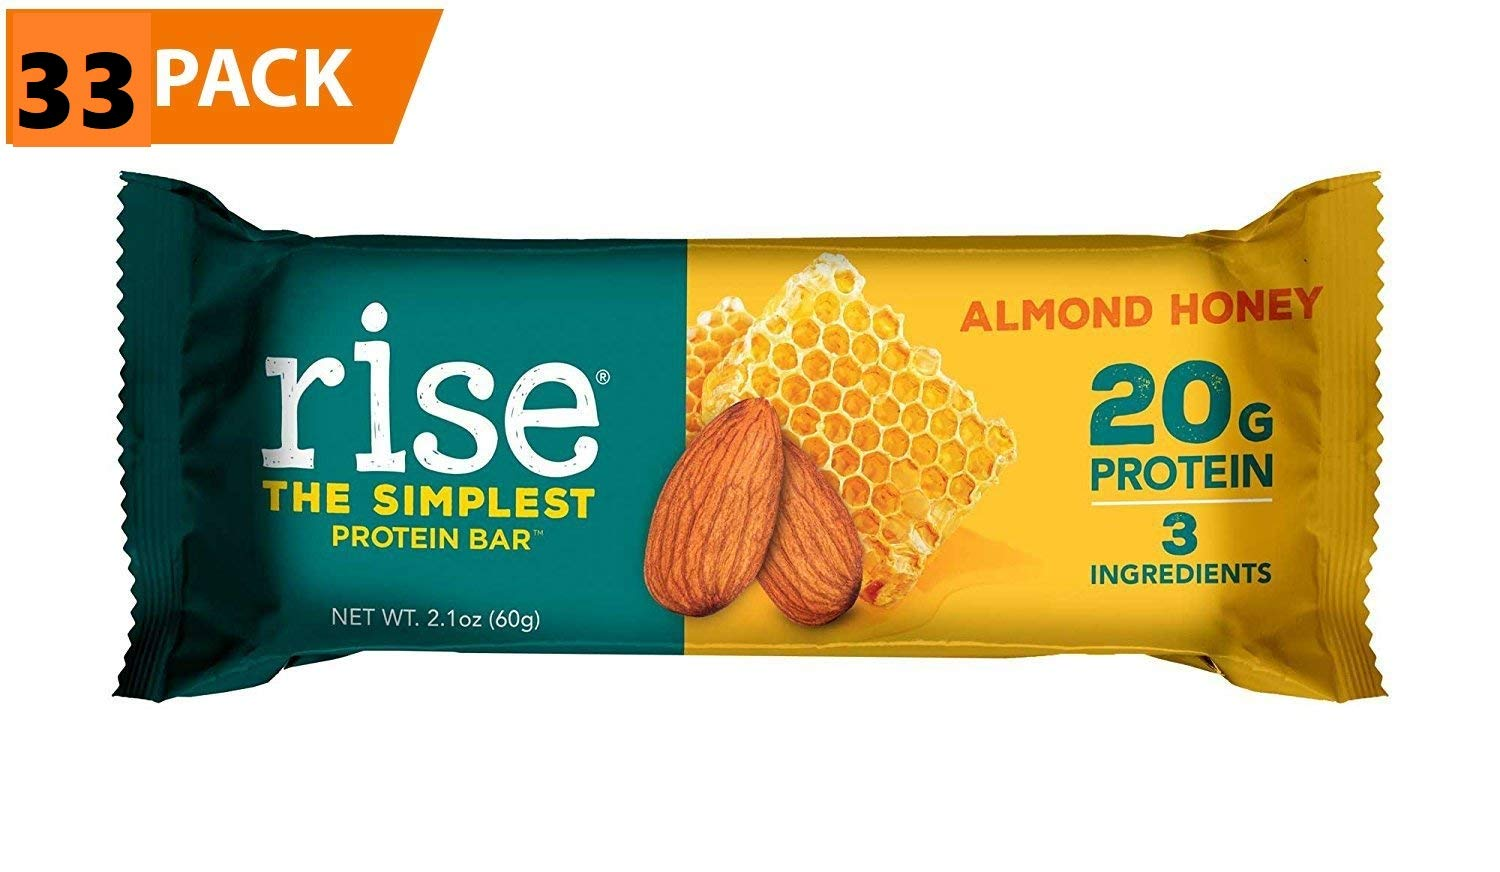 Rise Bar Non-GMO, Gluten Free, Soy Free, Real Whole Food, Whey Protein Bar (20g), No Added Sugar, Almond Honey High Protein Bar with Fiber, Potassium, Natural Vitamins &... (Almond Honey (33 Pack))